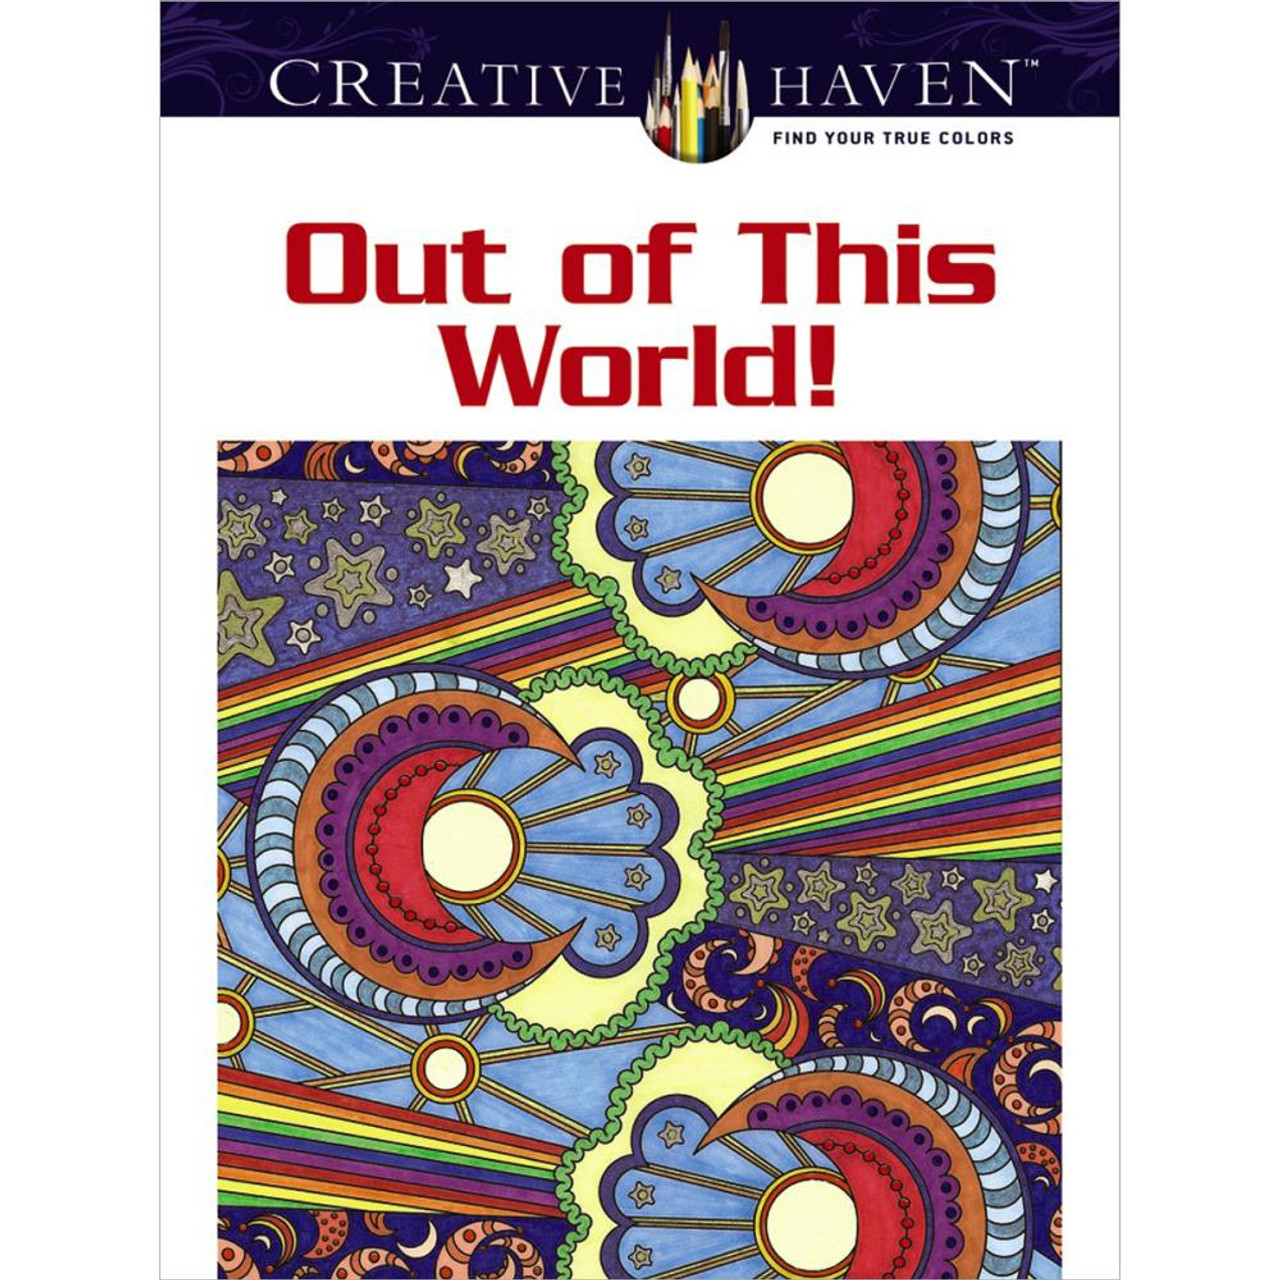 creative haven coloring book out of this world - Creative Haven Coloring Books